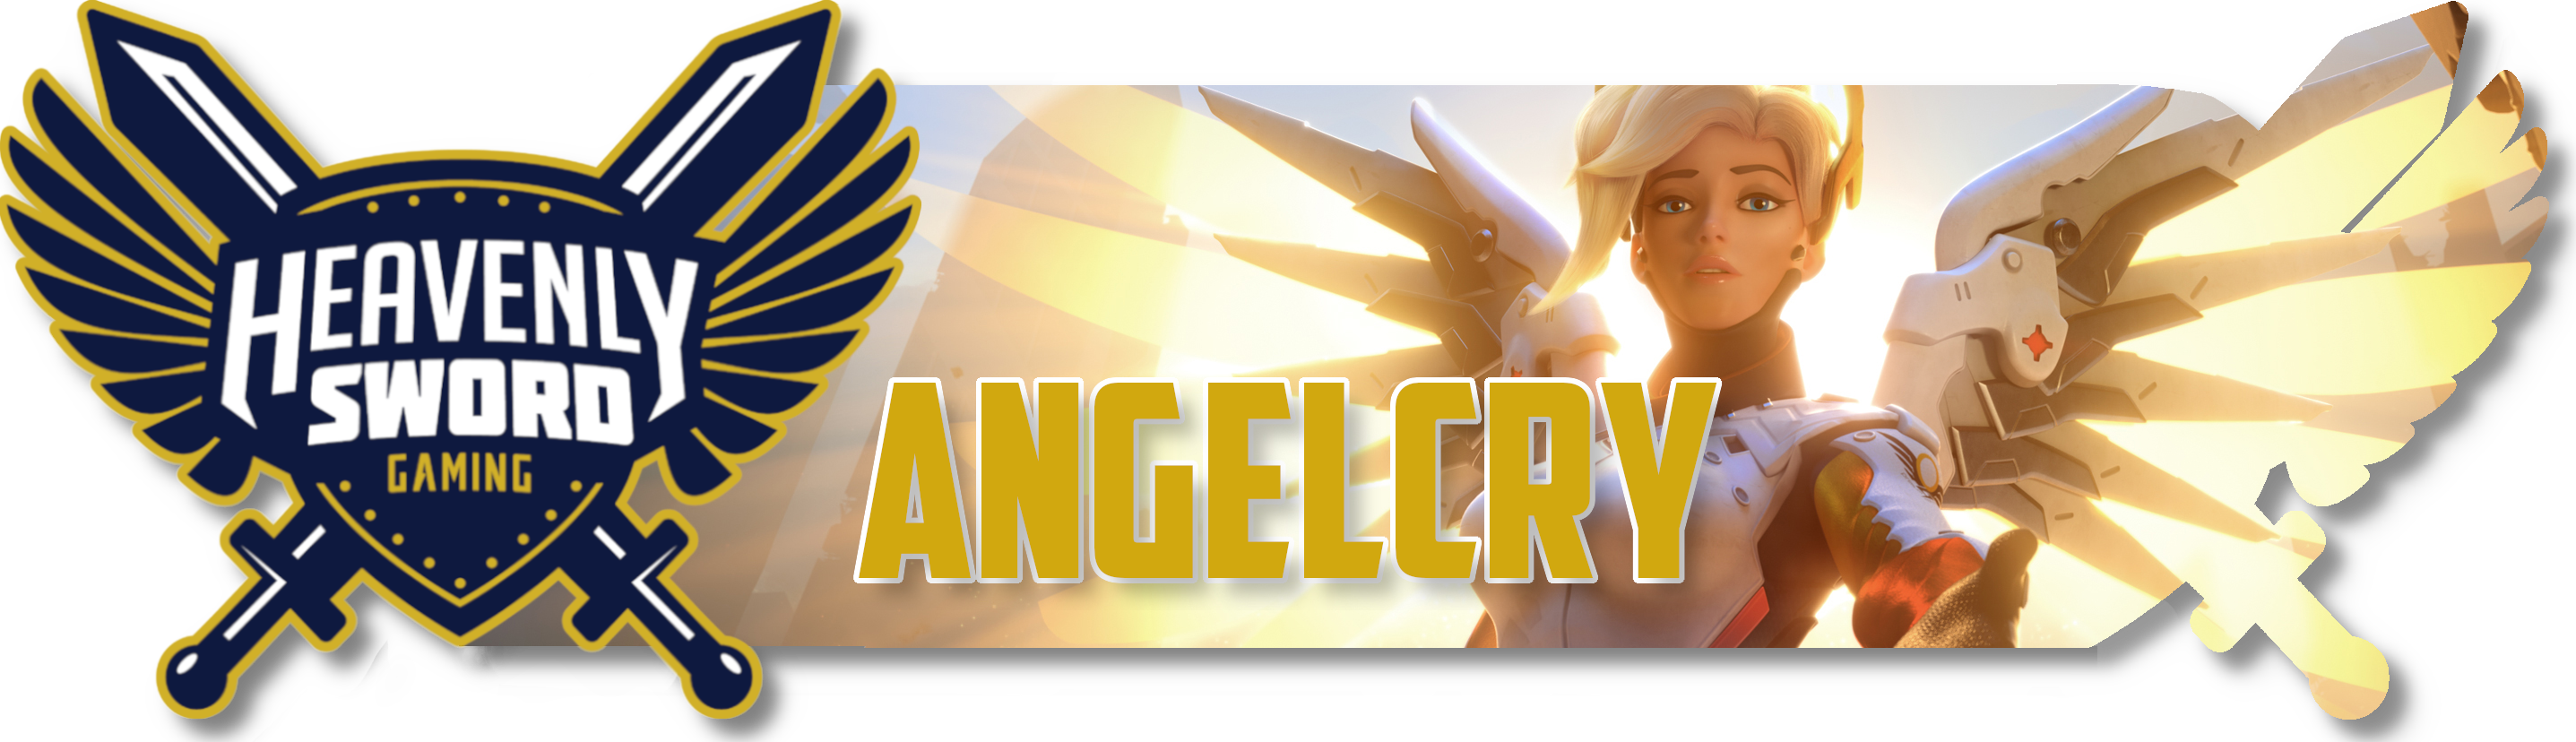 HSGNew-Signature-Format-Angelcry-April12th.png